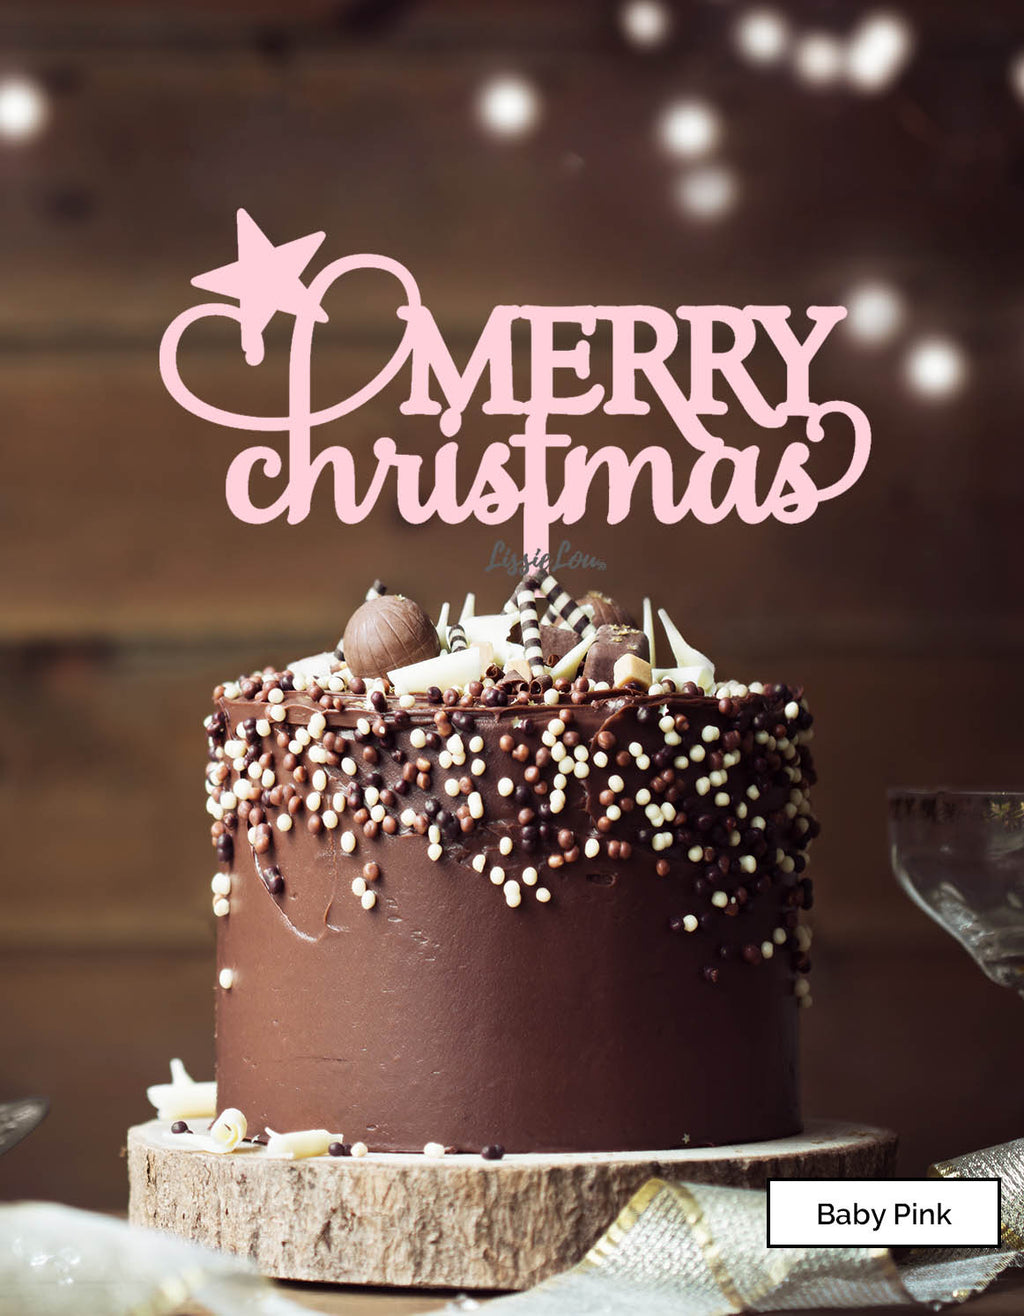 Merry Christmas Star Cake Topper Premium 3mm Acrylic Baby Pink